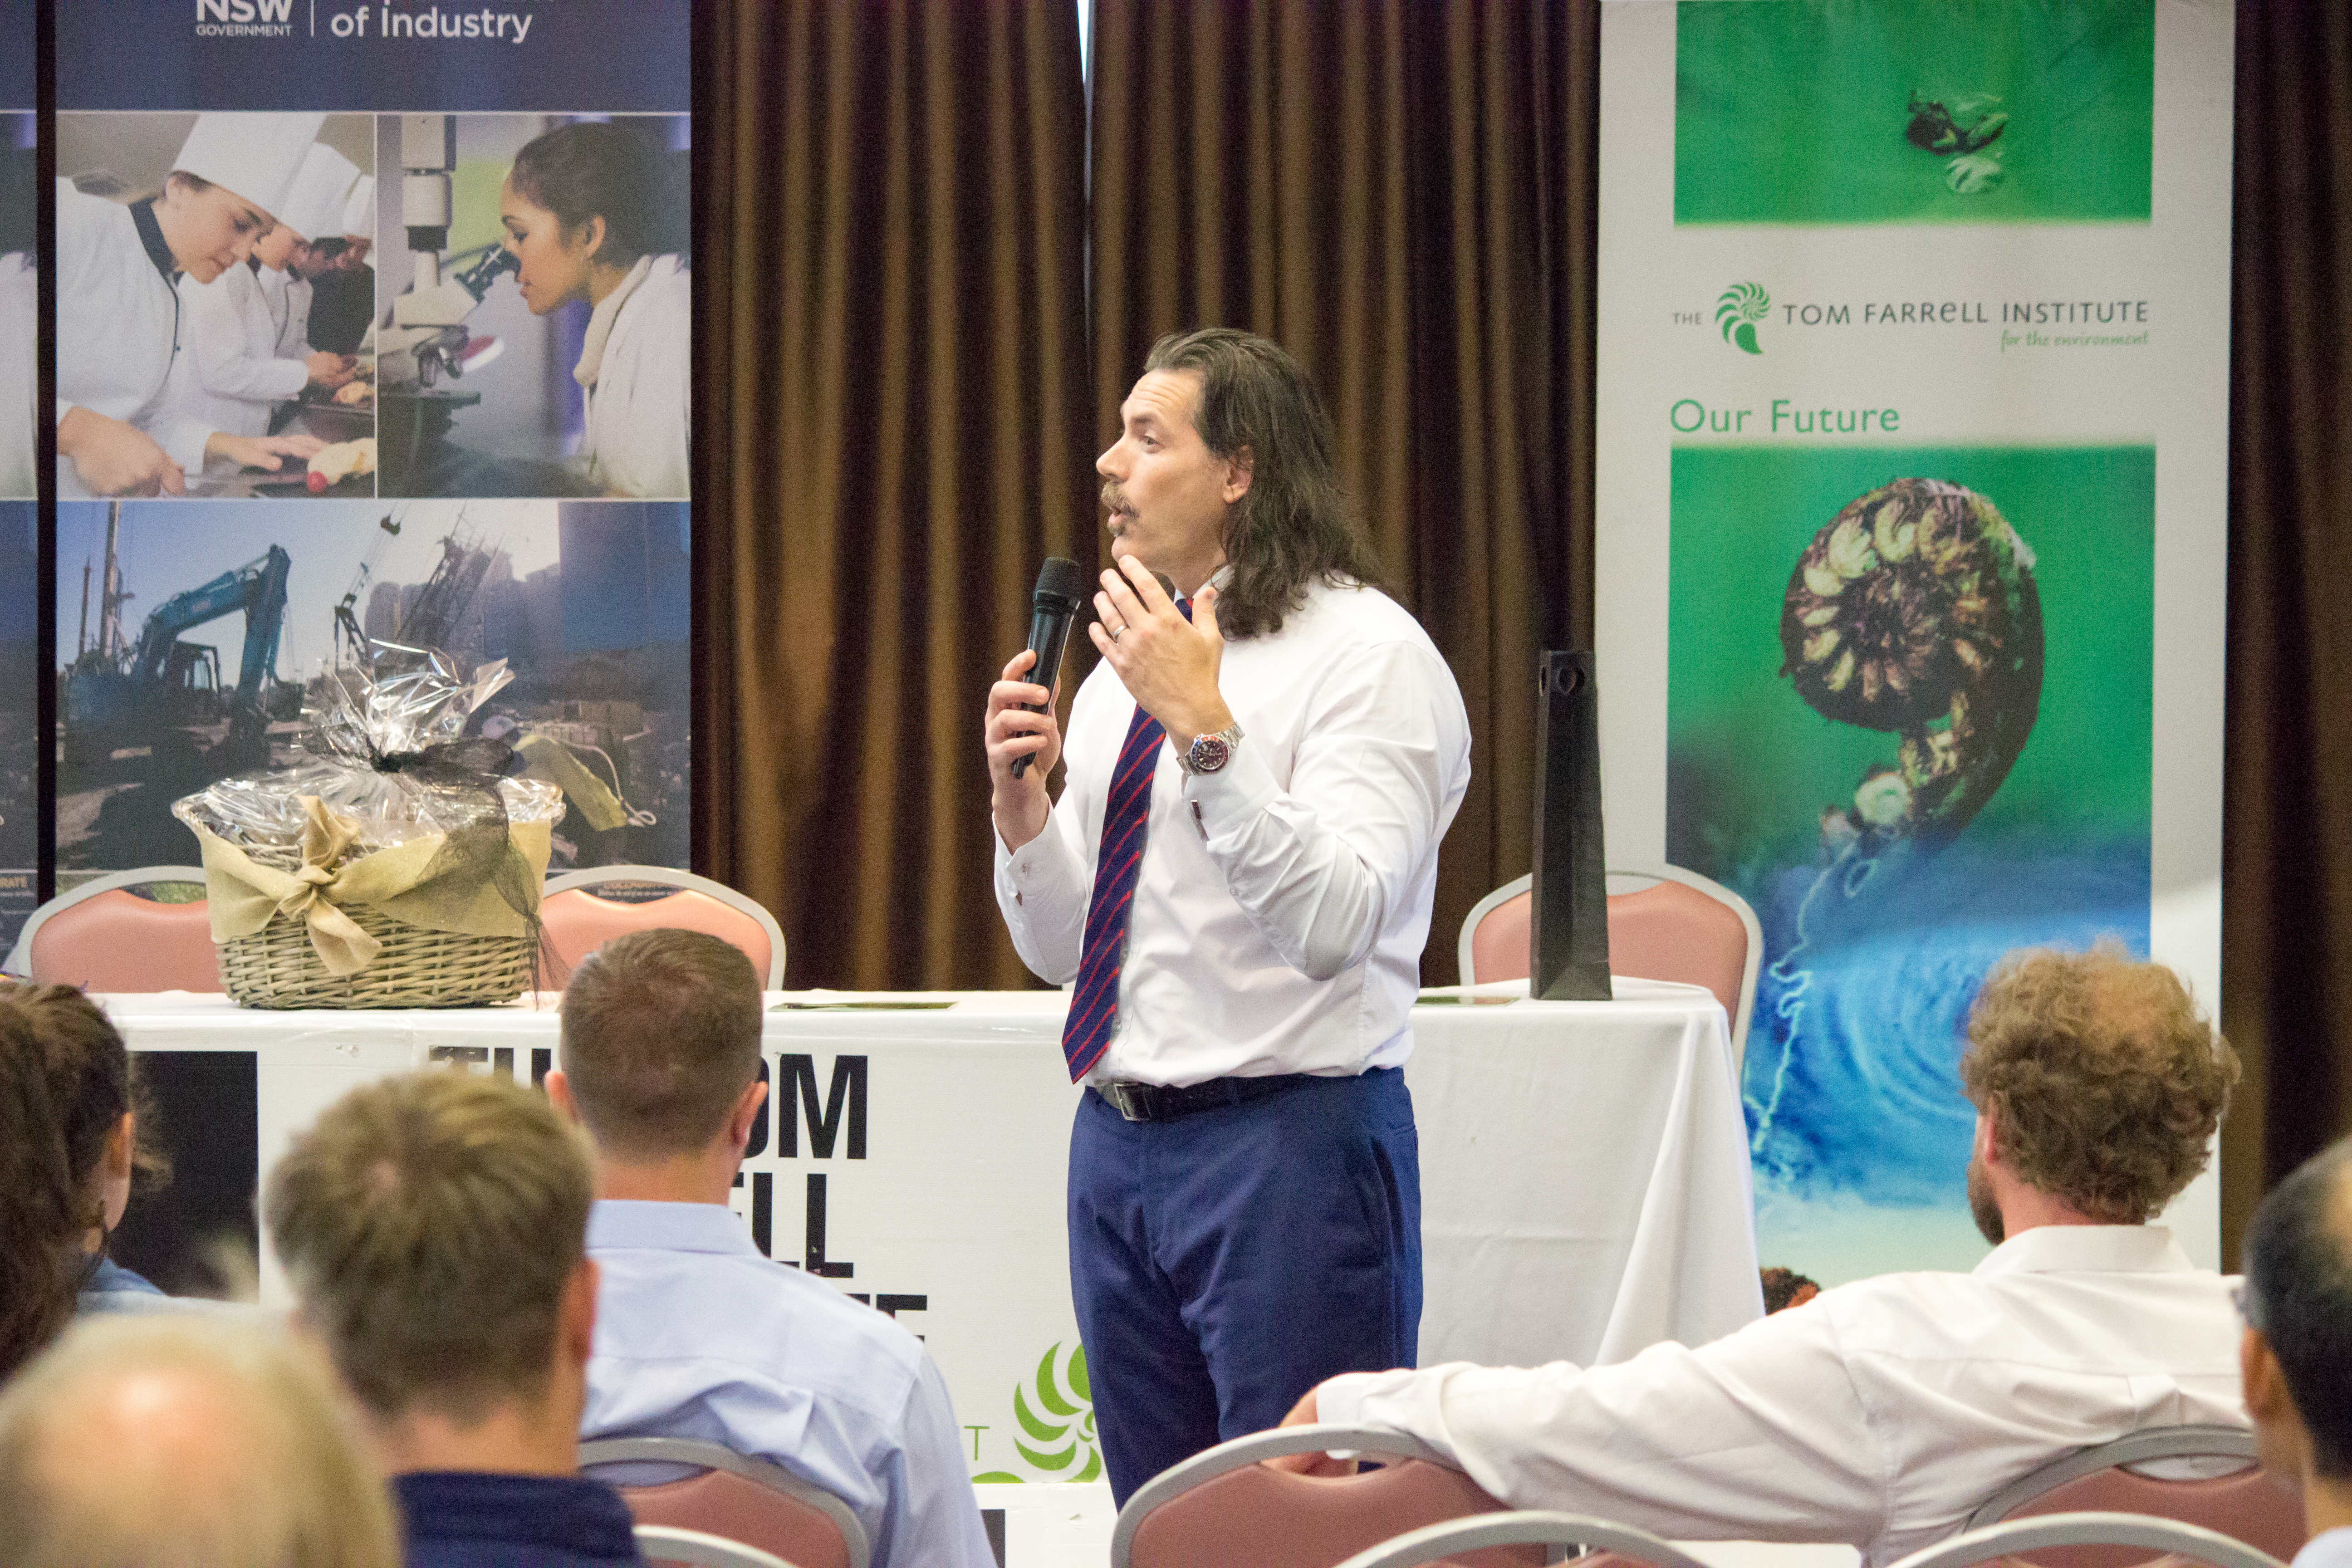 Dept of Industry - Division of Resources & Energy - Environmental Sustainability Unit was the Conference Partner in 2017. Dr David Blackmore pictured.